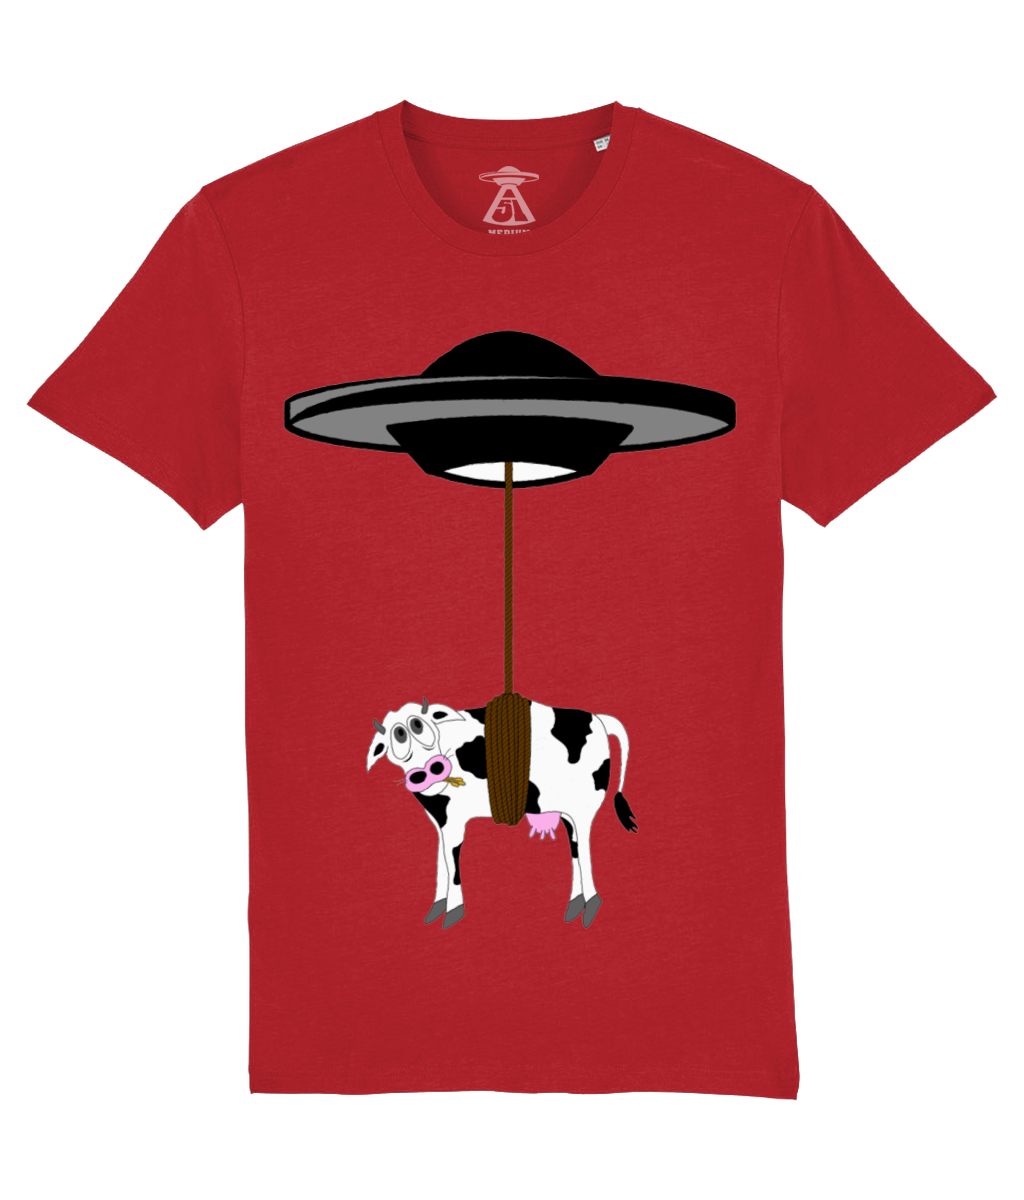 Abductstring - T-Shirt For Men - Abduction 51 Extraterrestrial Streetwear | UFO & Alien Inspired